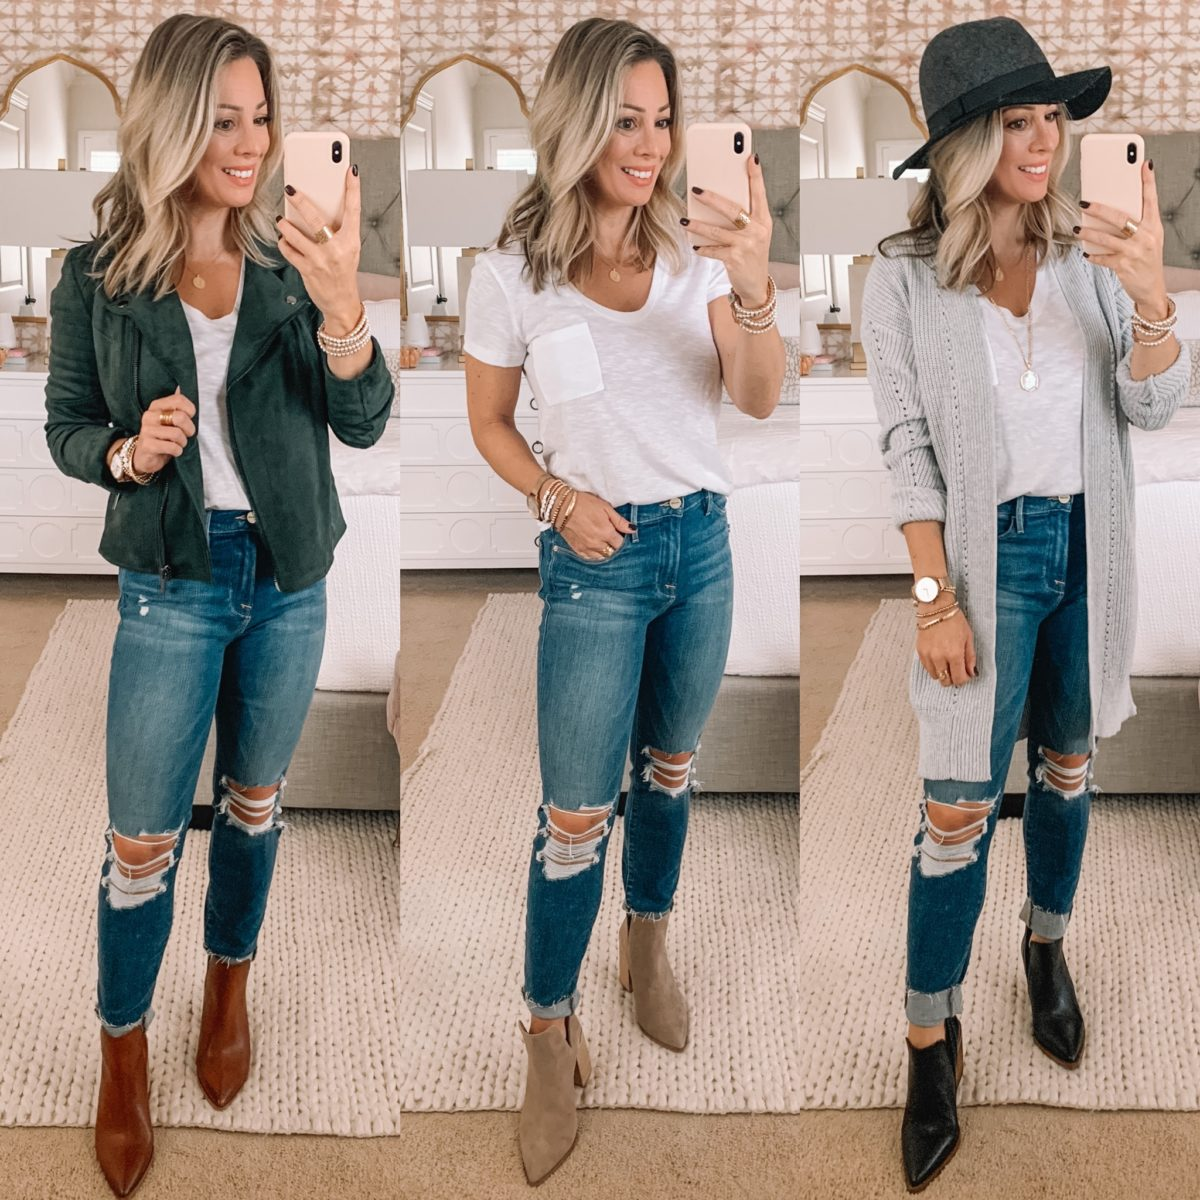 Nordstrom Sale Finds, Green Moto Jacket, White Tee, Jeans, Booties, Cardigan, Hat